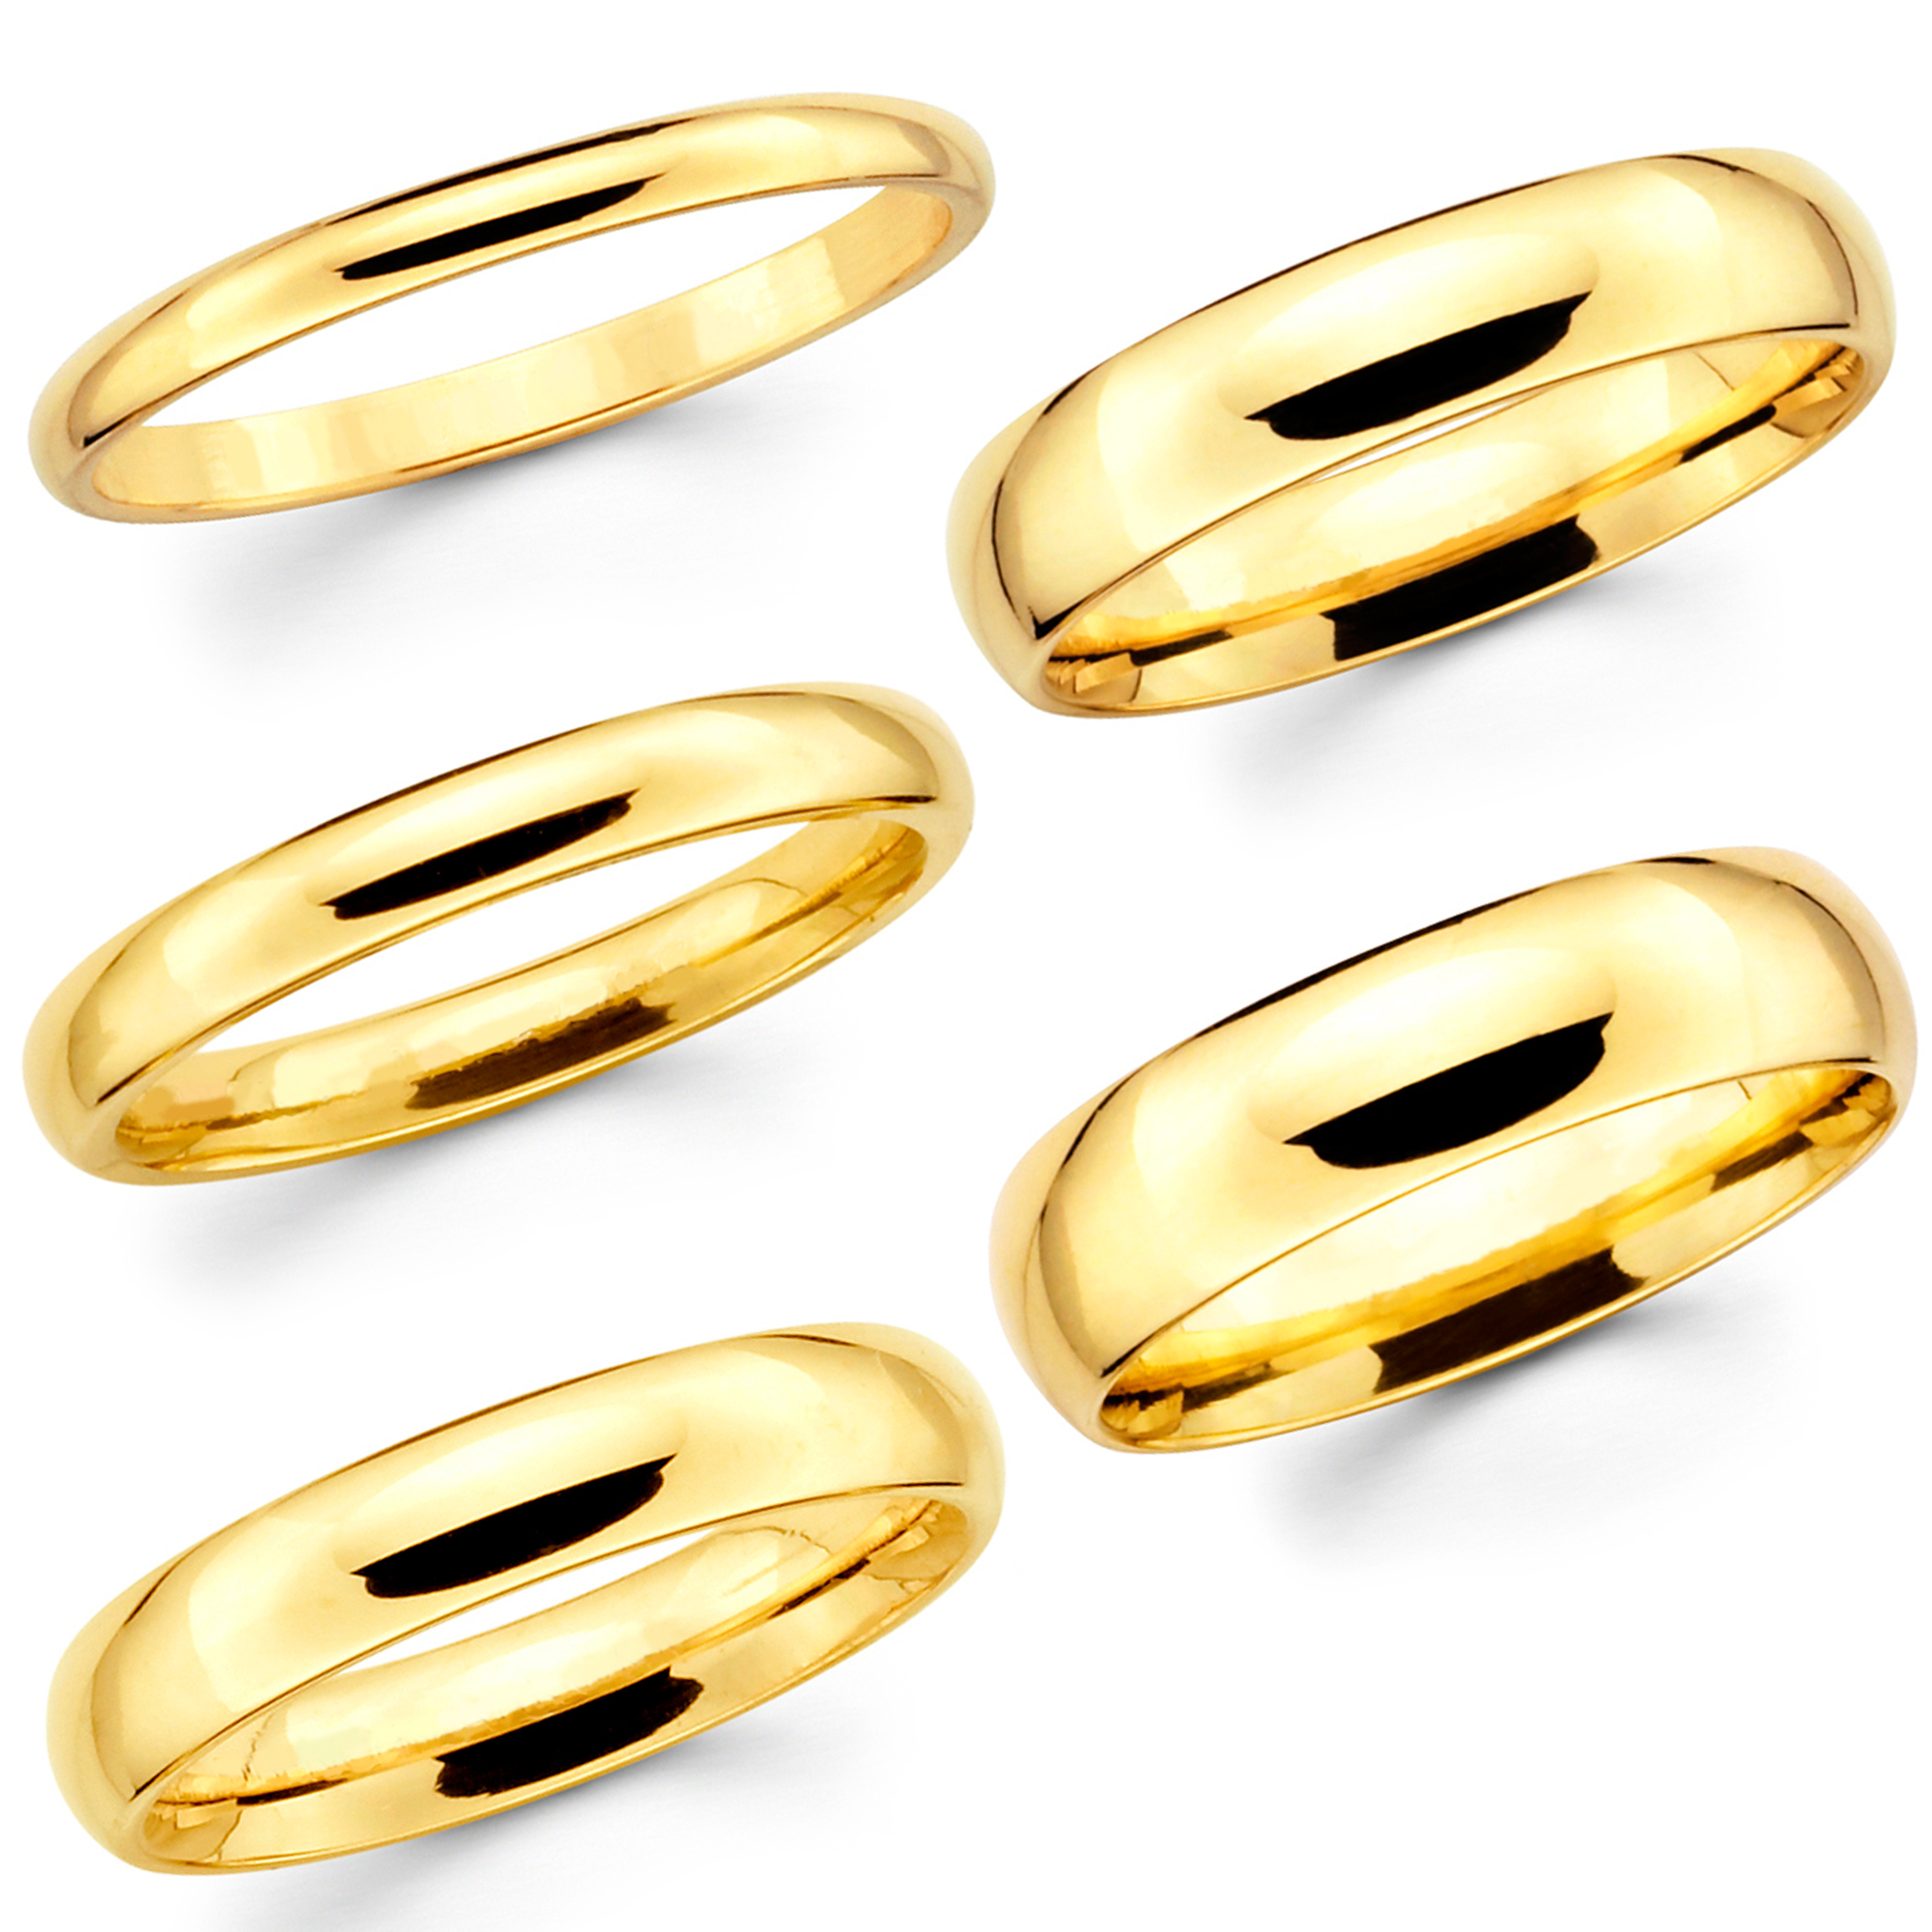 show photo yellow bands rings plain your gold photos to gallery weddingbee attachment with wedding me regard of viewing